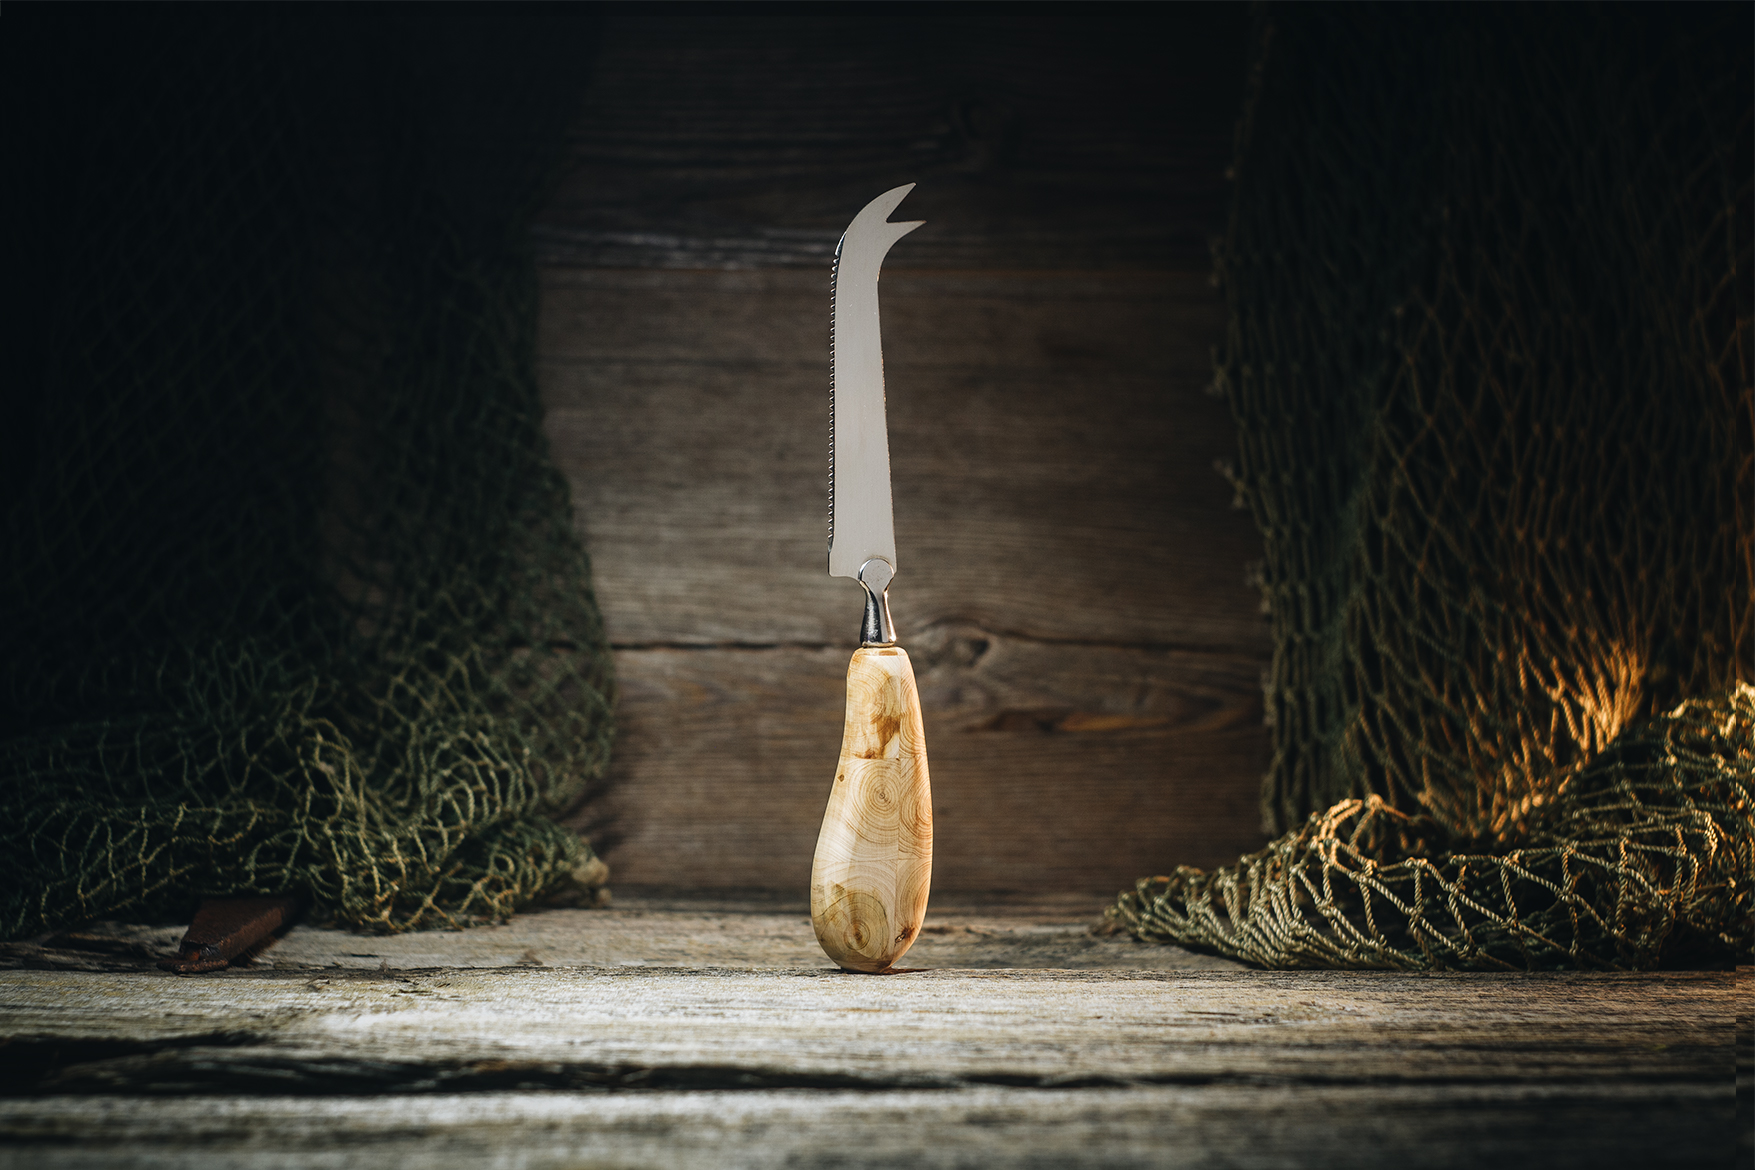 Juustunuga (kadakas)/ Cheese knife (juniper)